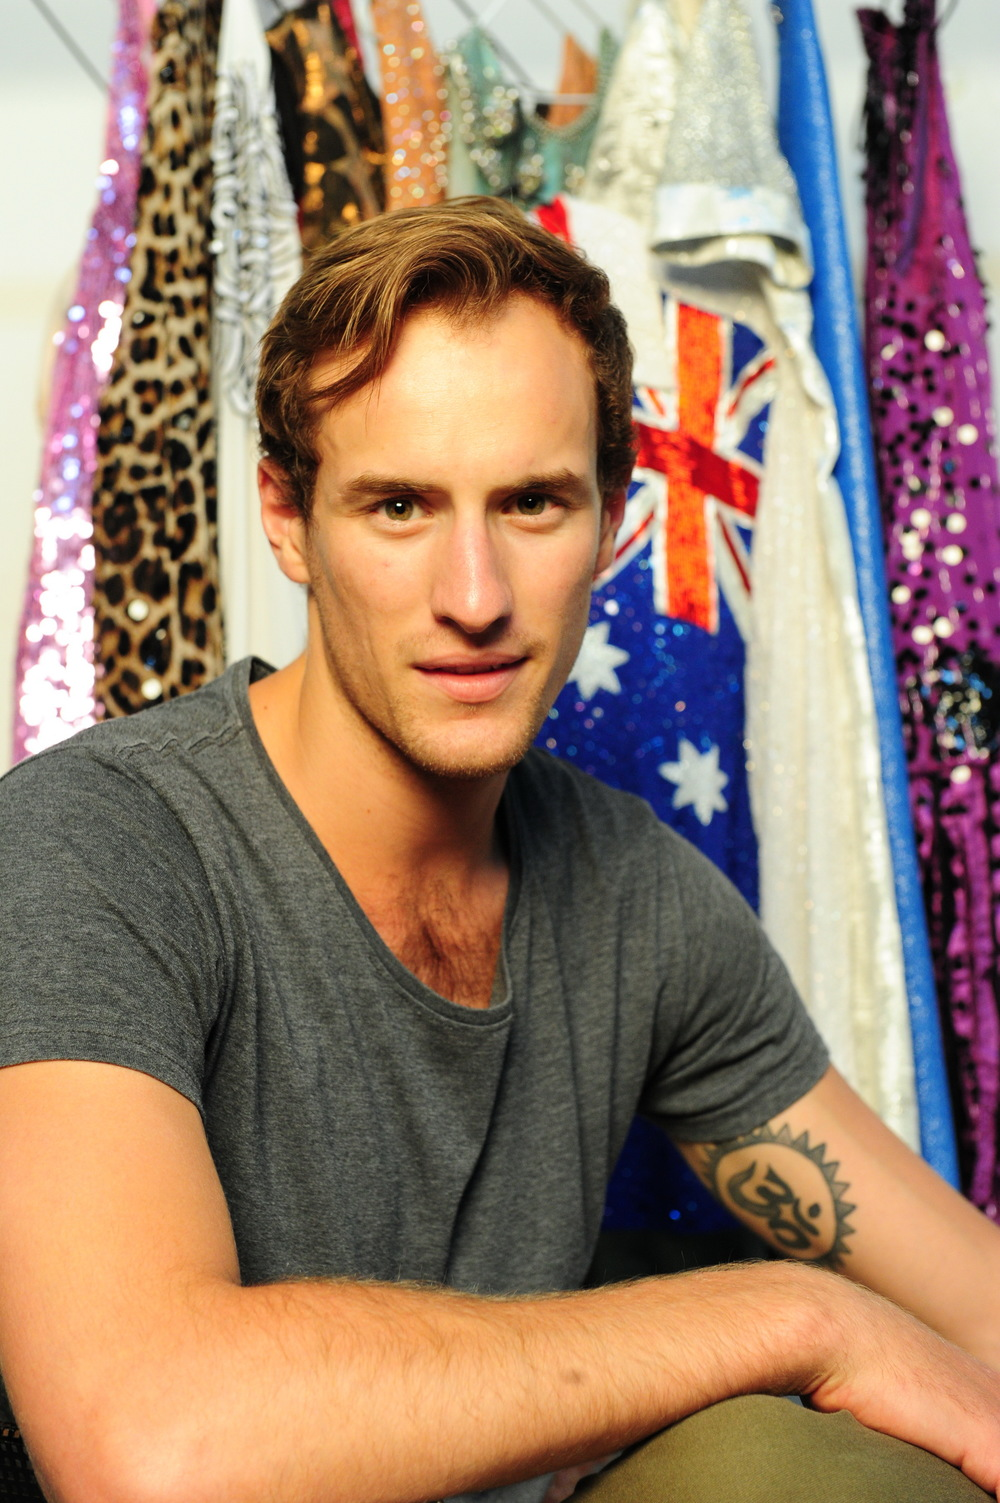 JOEL JACKSON as Peter Allen